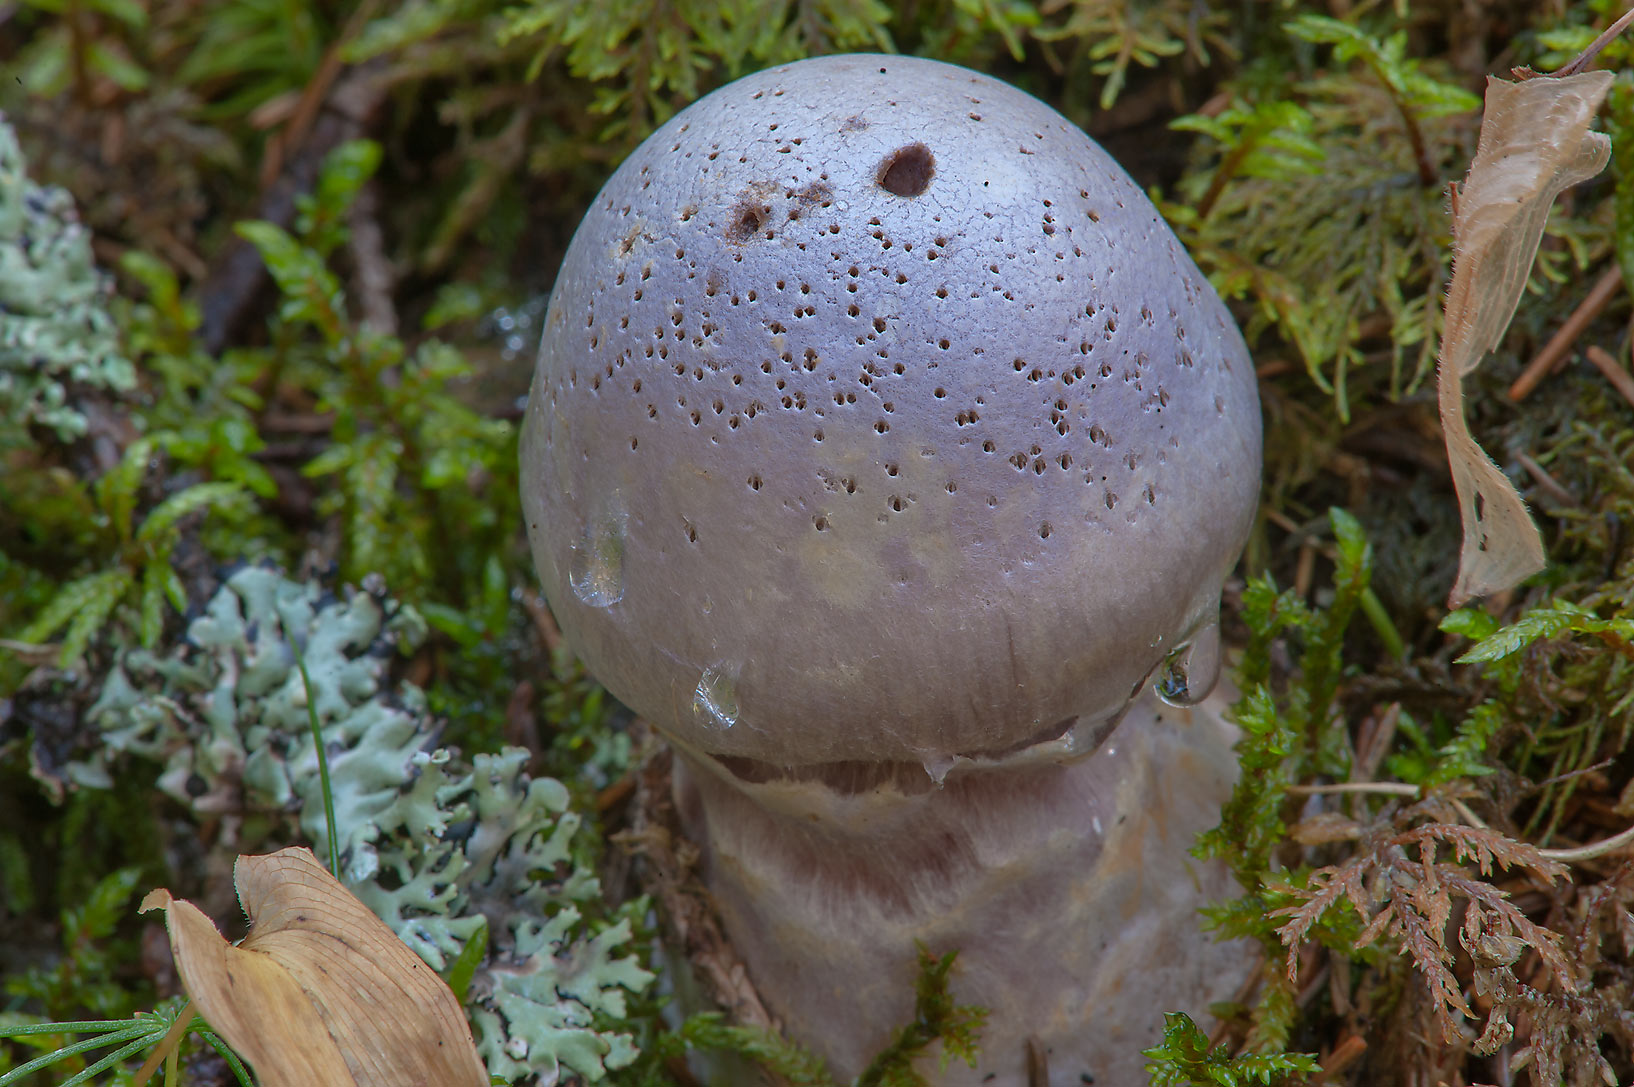 Gassy webcap mushroom (Cortinarius traganus) in...miles north from St.Petersburg. Russia